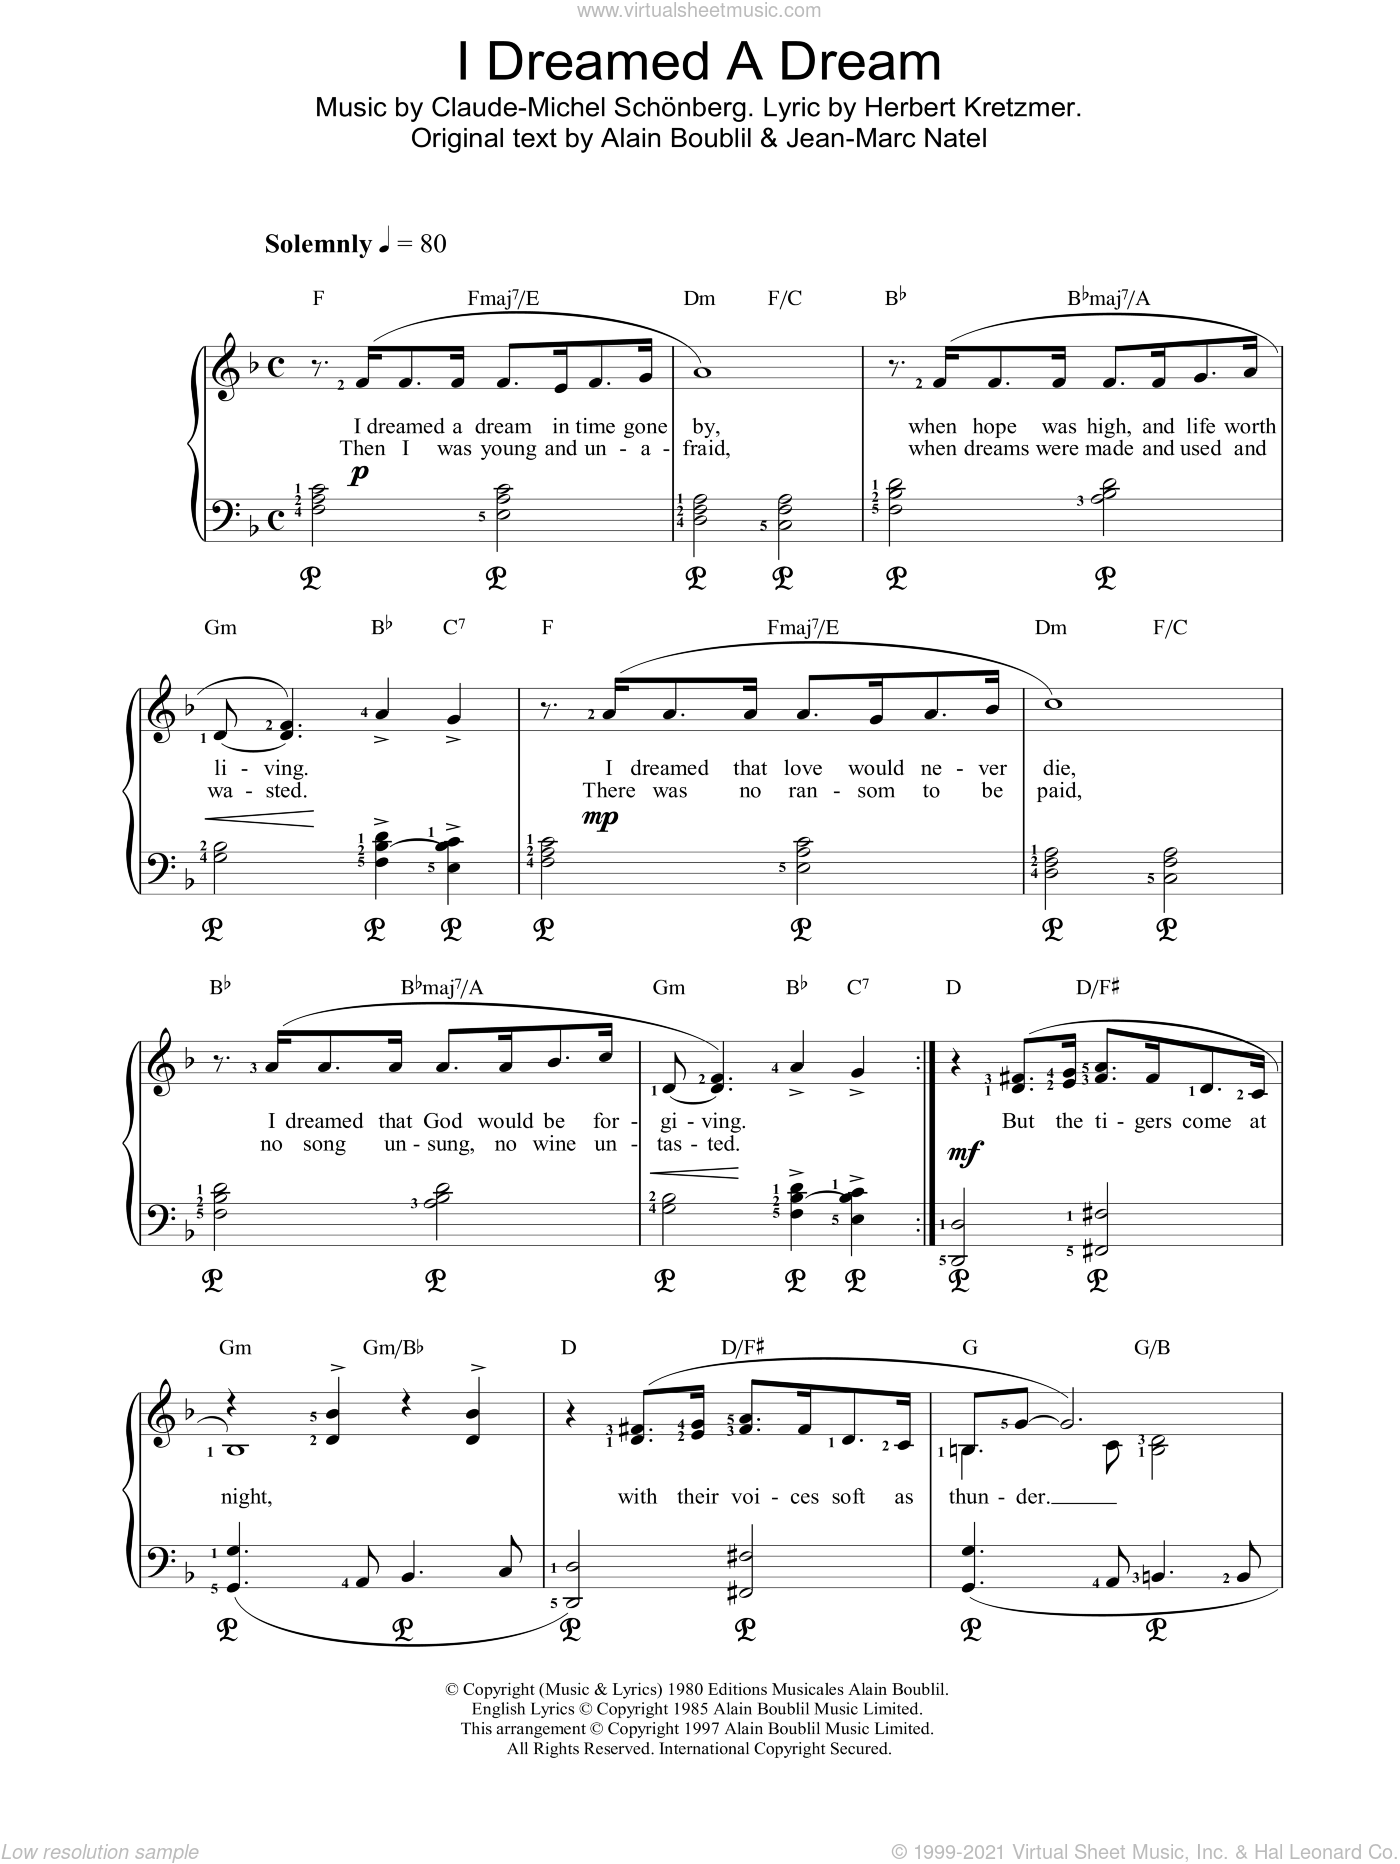 I Dreamed A Dream sheet music for piano solo by Alain Boublil